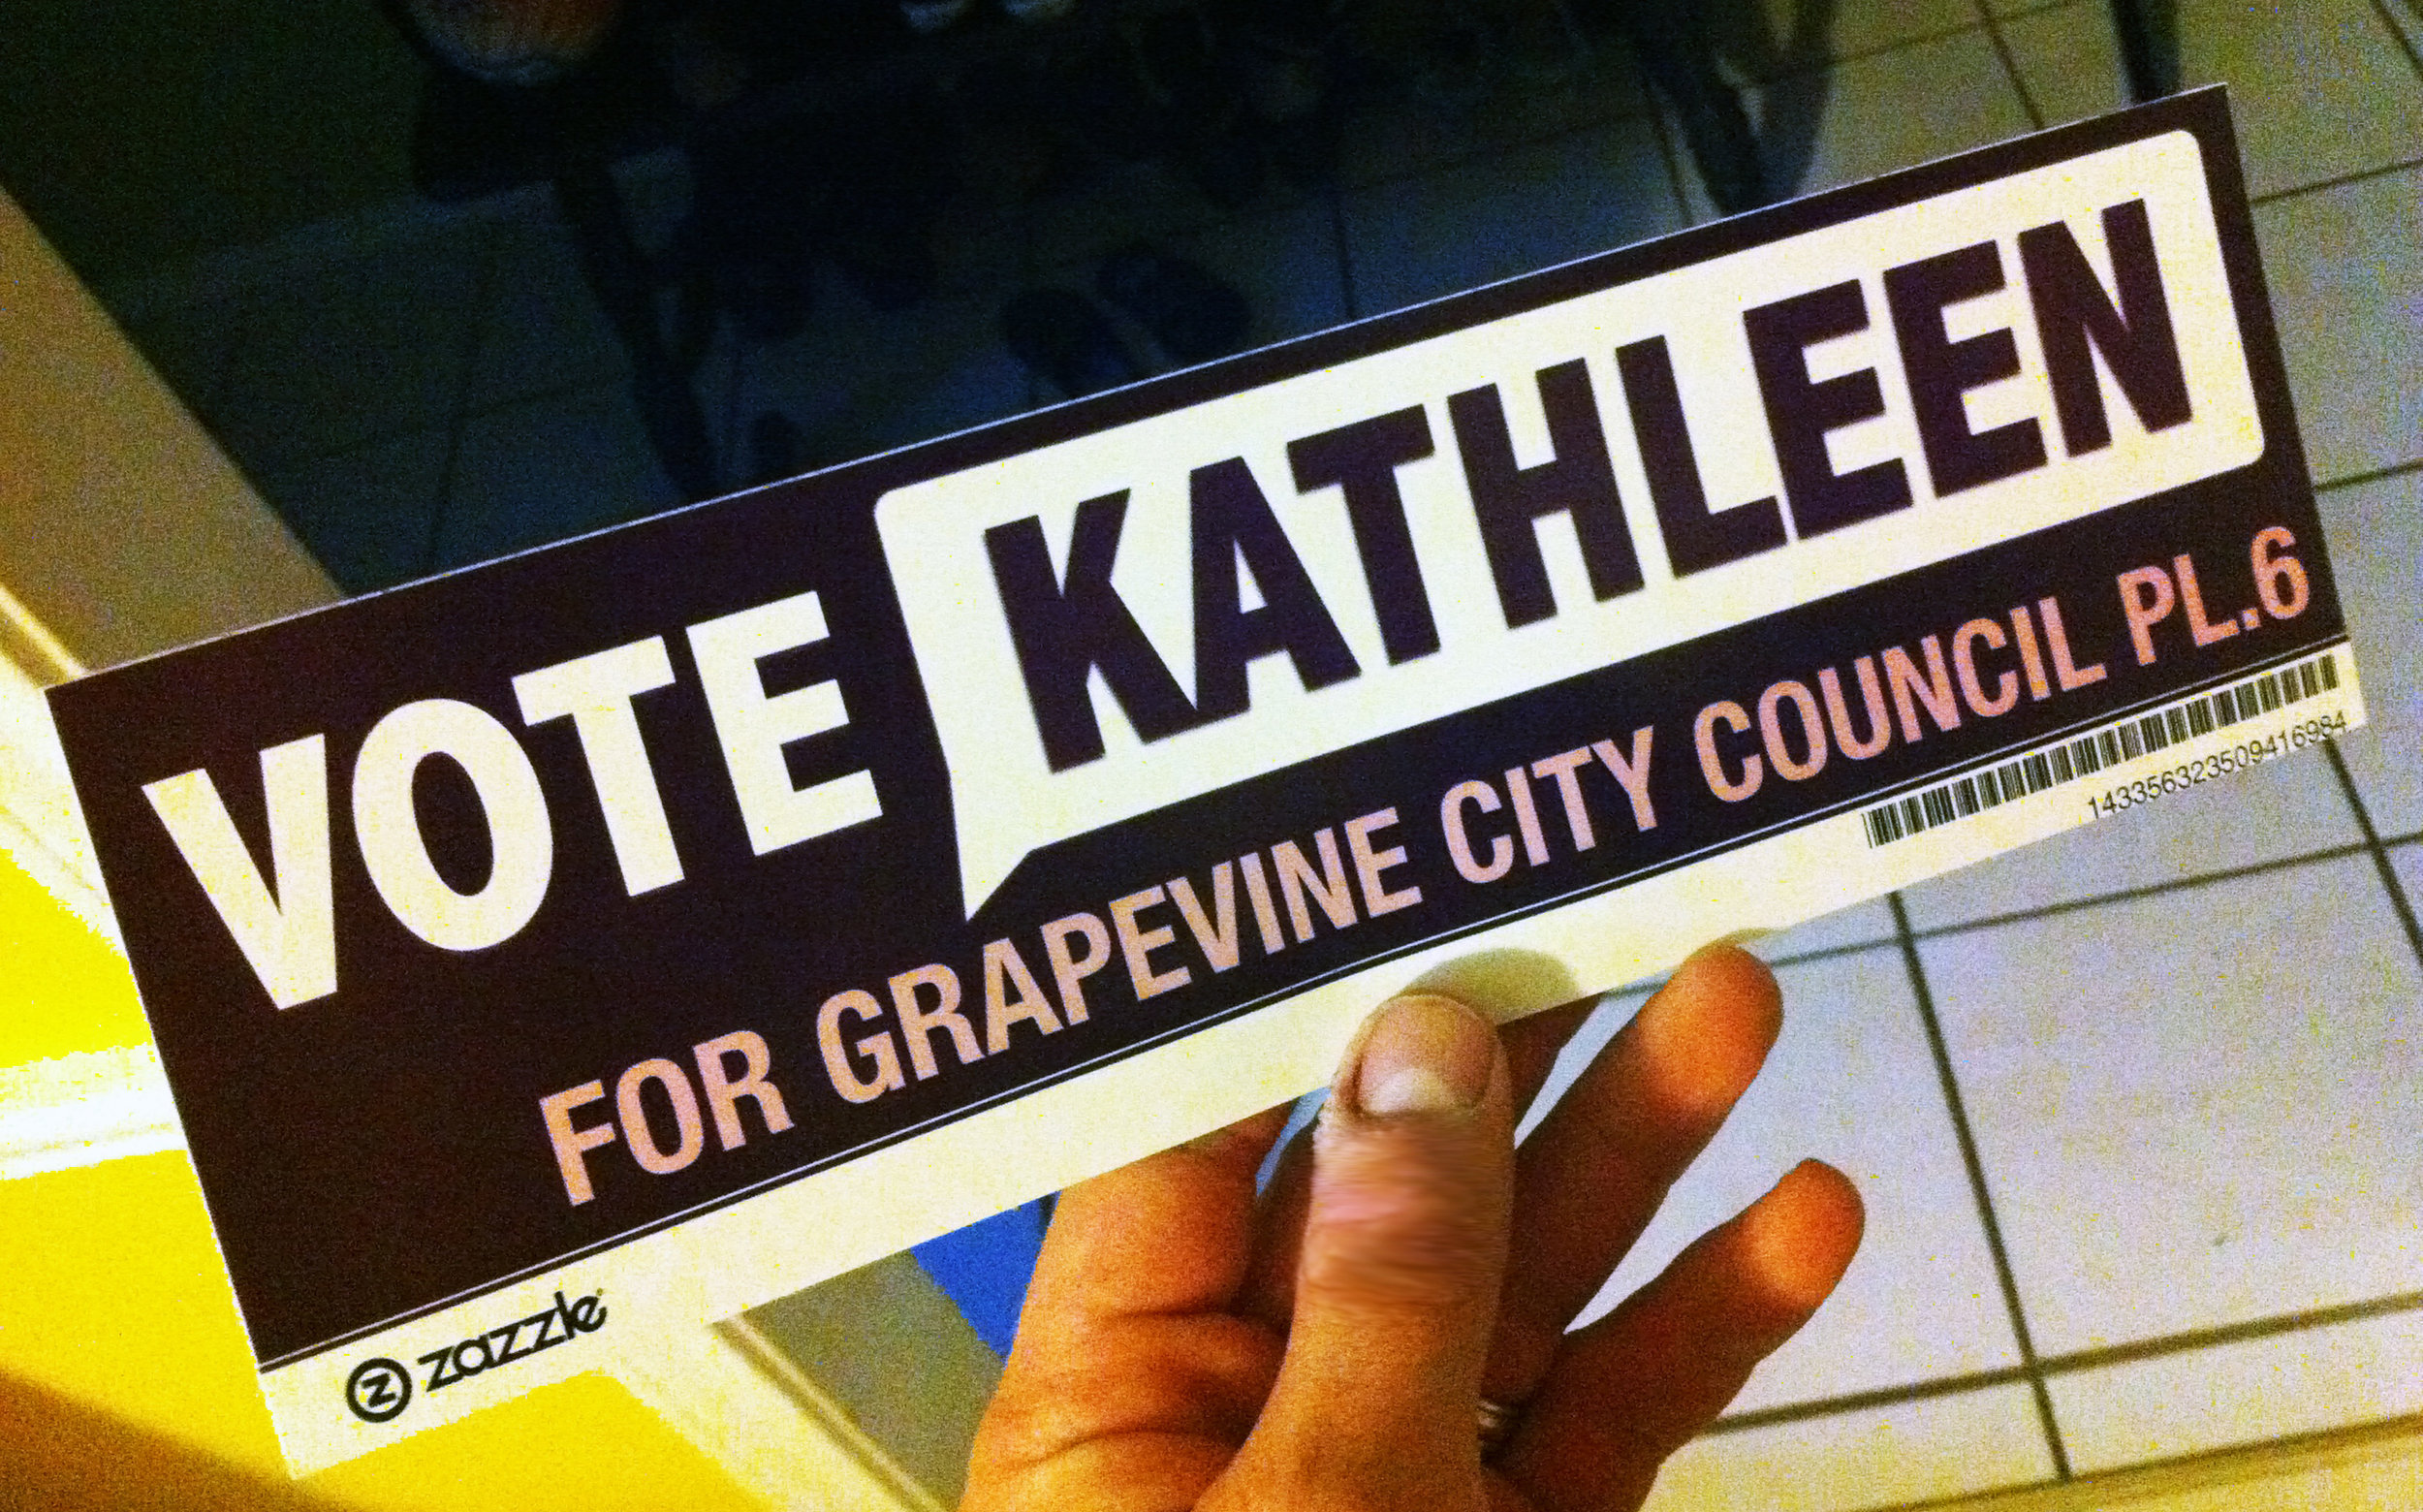 Vote Kathleen Thompson for Grapevine City Council